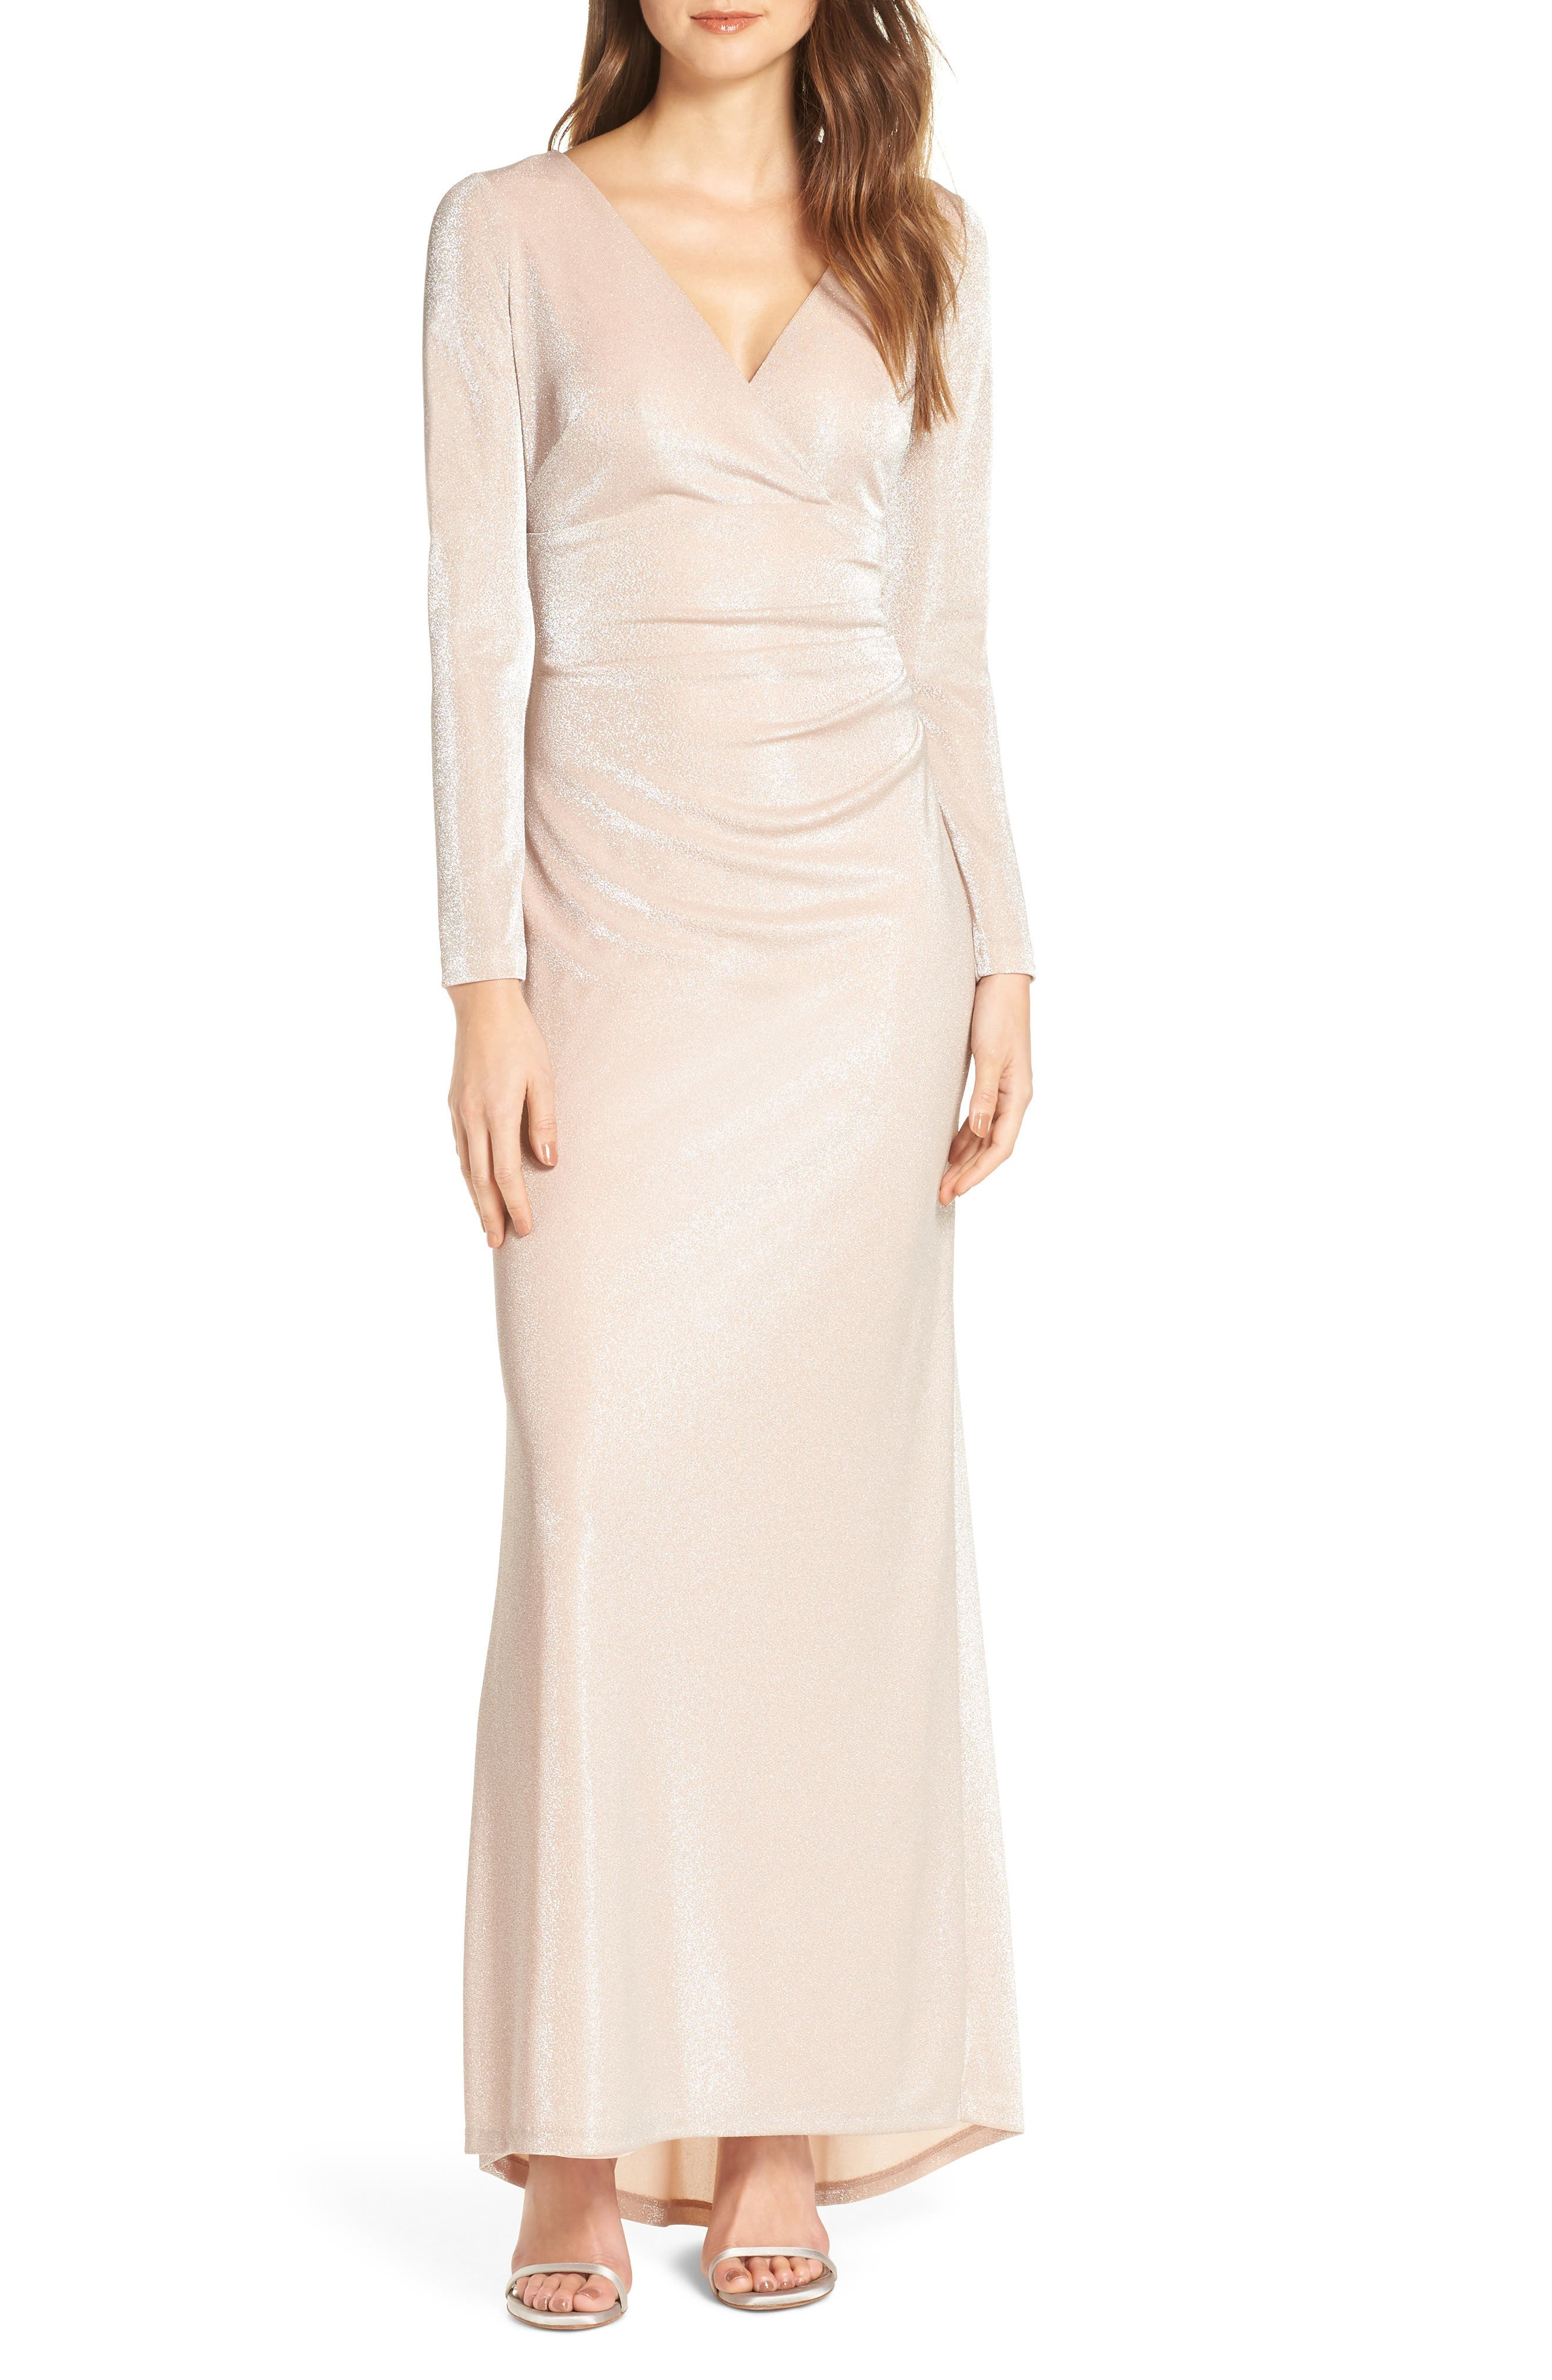 Vince Camuto Wrap Evening Dress, Pink